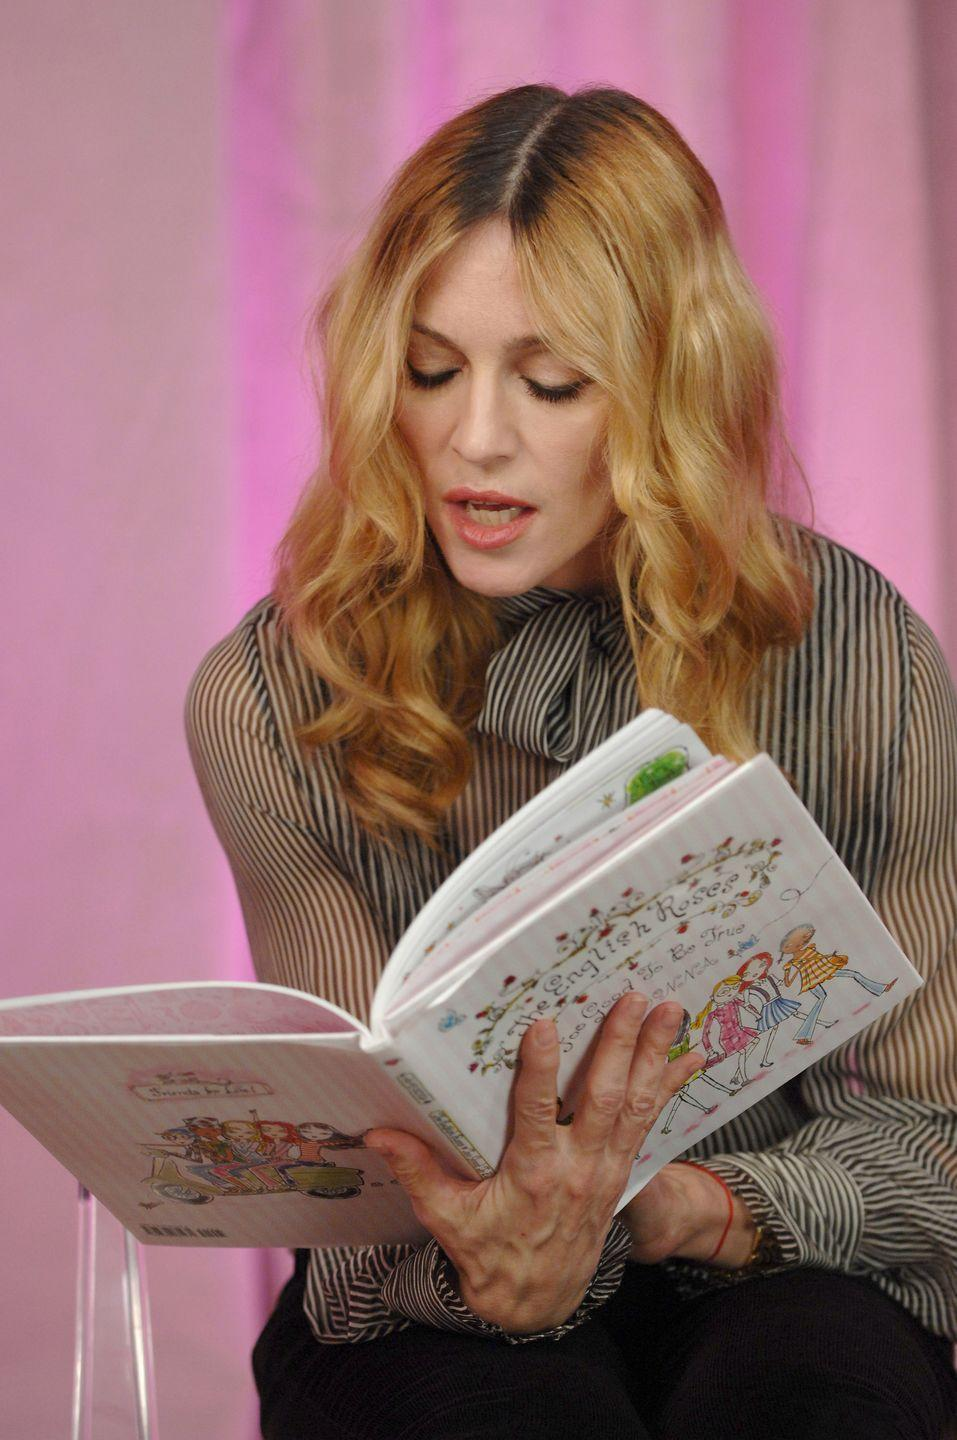 "<p>Madonna has worked on 30 books—11 coffee table books, 12 chapter books, and seven picture books for kids. In terms of her writing career, the Grammy and Academy Award winner is probably best known for her <em>English Roses</em> series, the first of which was published in 2003. </p><p>The books follow the friendship of five girls, and the ups and downs that come with it, and are named after group of friends Madonna's daughter plays with at school, she told <em><a href=""https://www.publishersweekly.com/pw/by-topic/authors/interviews/article/33935-mum-s-the-word-pw-talks-with-madonna.html"" rel=""nofollow noopener"" target=""_blank"" data-ylk=""slk:Publishers Weekly"" class=""link rapid-noclick-resp"">Publishers Weekly</a></em>. The idea for the series was planted by the Queen of Pop's Kabbalah teacher, who suggested she write children's books to ""share the wisdom you've gained as an adult."" The first book in the series debuted at number one on the <em><a href=""https://sanoma.com/release/madonnas-book-the-english-roses-debuts-at-no-1-on-the-new-york-times-childrens-best-seller-list/"" rel=""nofollow noopener"" target=""_blank"" data-ylk=""slk:New York Times"" class=""link rapid-noclick-resp"">New York Times</a></em> children's bestsellers list. <br></p><p><a class=""link rapid-noclick-resp"" href=""https://www.amazon.com/English-Roses-Madonna/dp/0670036781?tag=syn-yahoo-20&ascsubtag=%5Bartid%7C2139.g.34385633%5Bsrc%7Cyahoo-us"" rel=""nofollow noopener"" target=""_blank"" data-ylk=""slk:Buy the Book"">Buy the Book</a></p>"